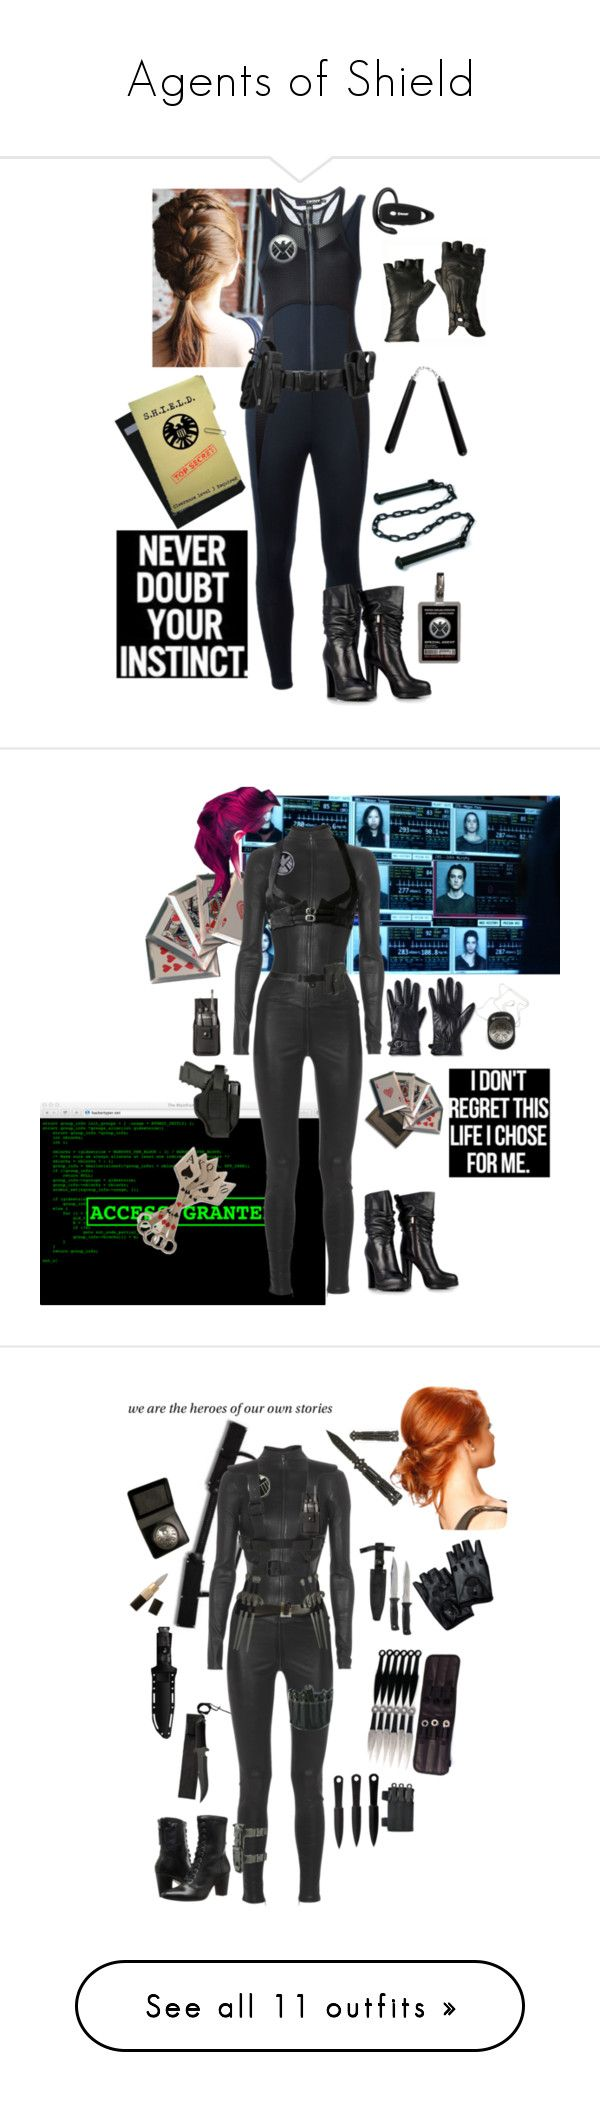 """""""Agents of Shield"""" by capfan2014 ❤ liked on Polyvore featuring DKNY, Merona, S.W.O.R.D., Fleet Ilya, Cold Steel, Johnston & Murphy, American Eagle Outfitters, Hakaan, AllSaints and Jitrois"""